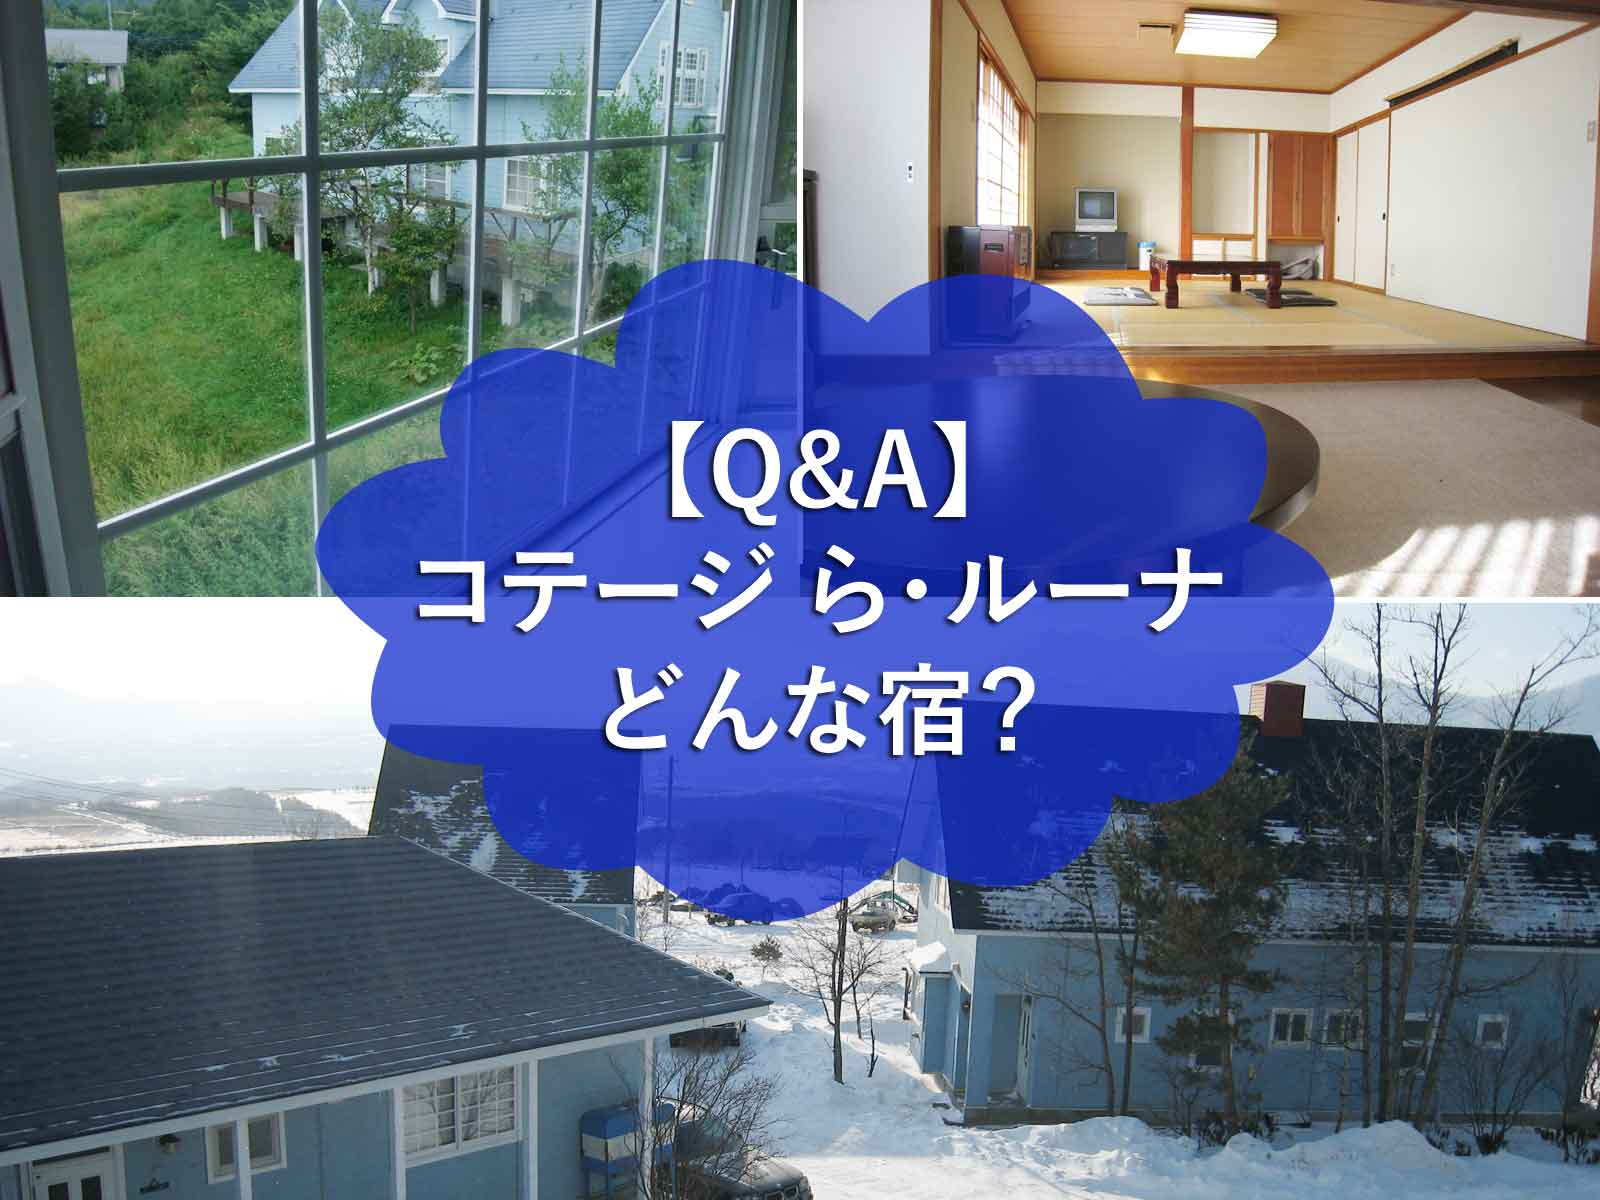 【Q&A】コテージ ら・ルーナ どんな宿?